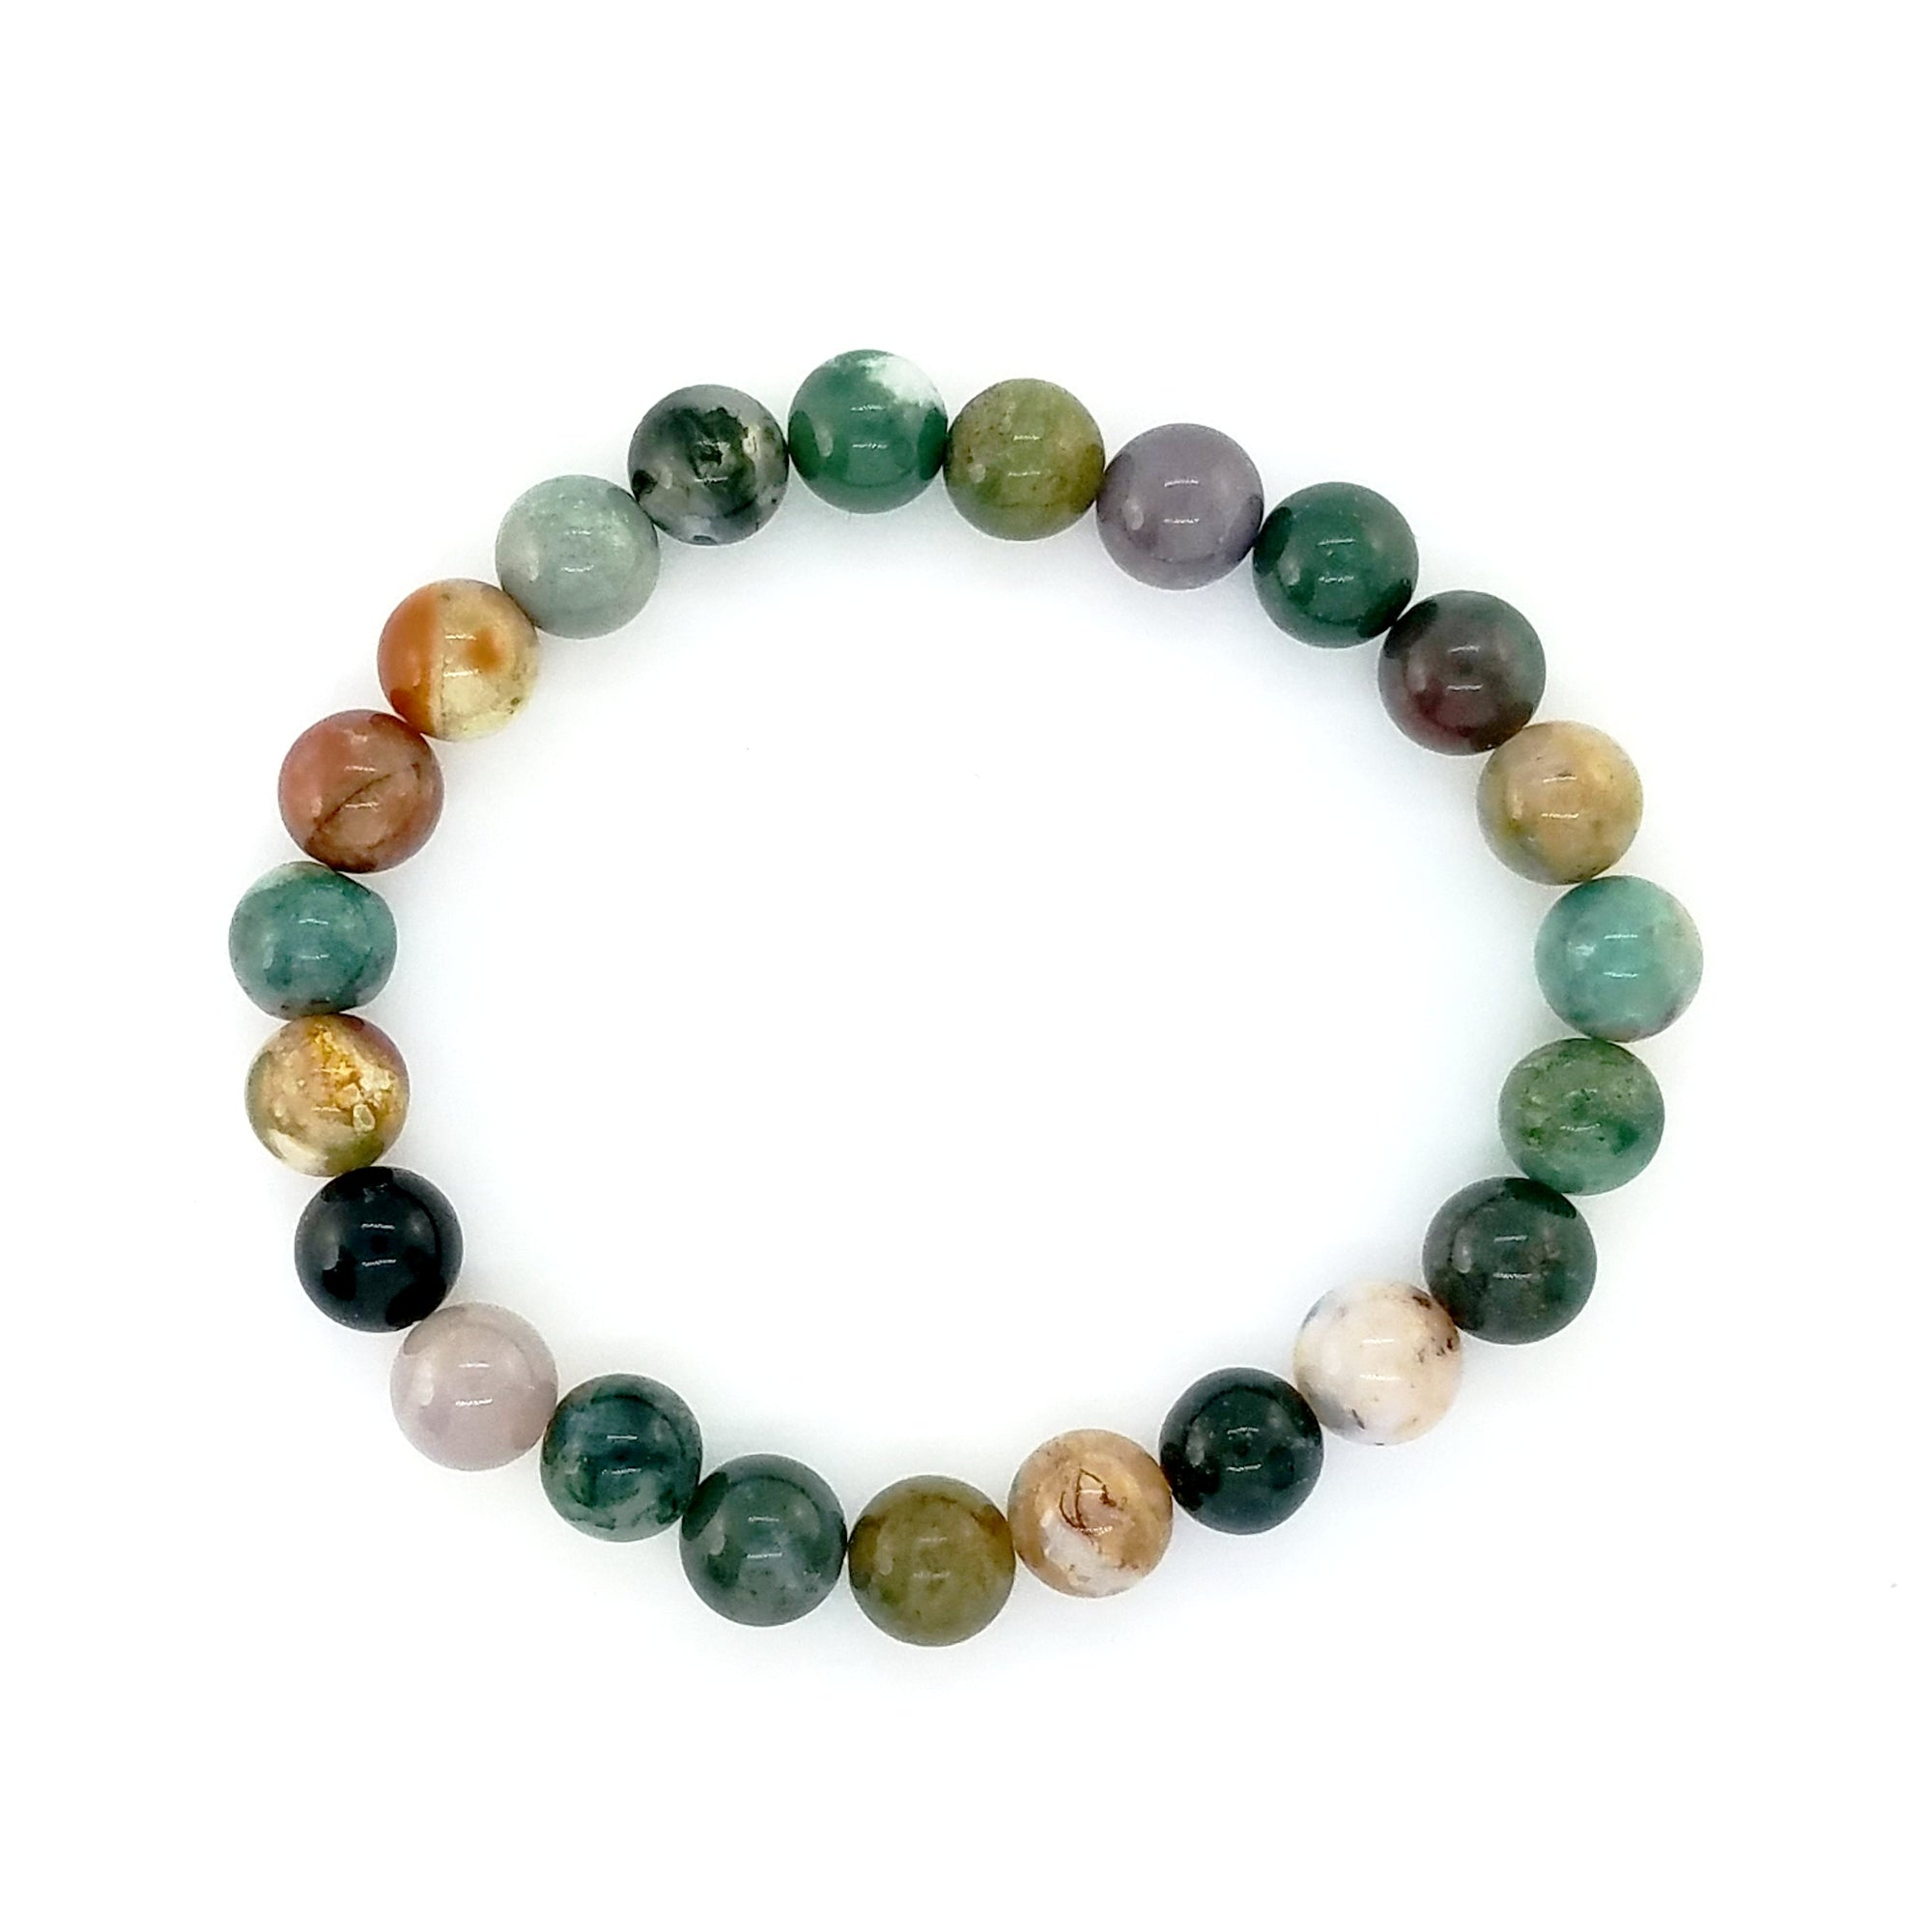 Fancy Jasper Bead Bracelet